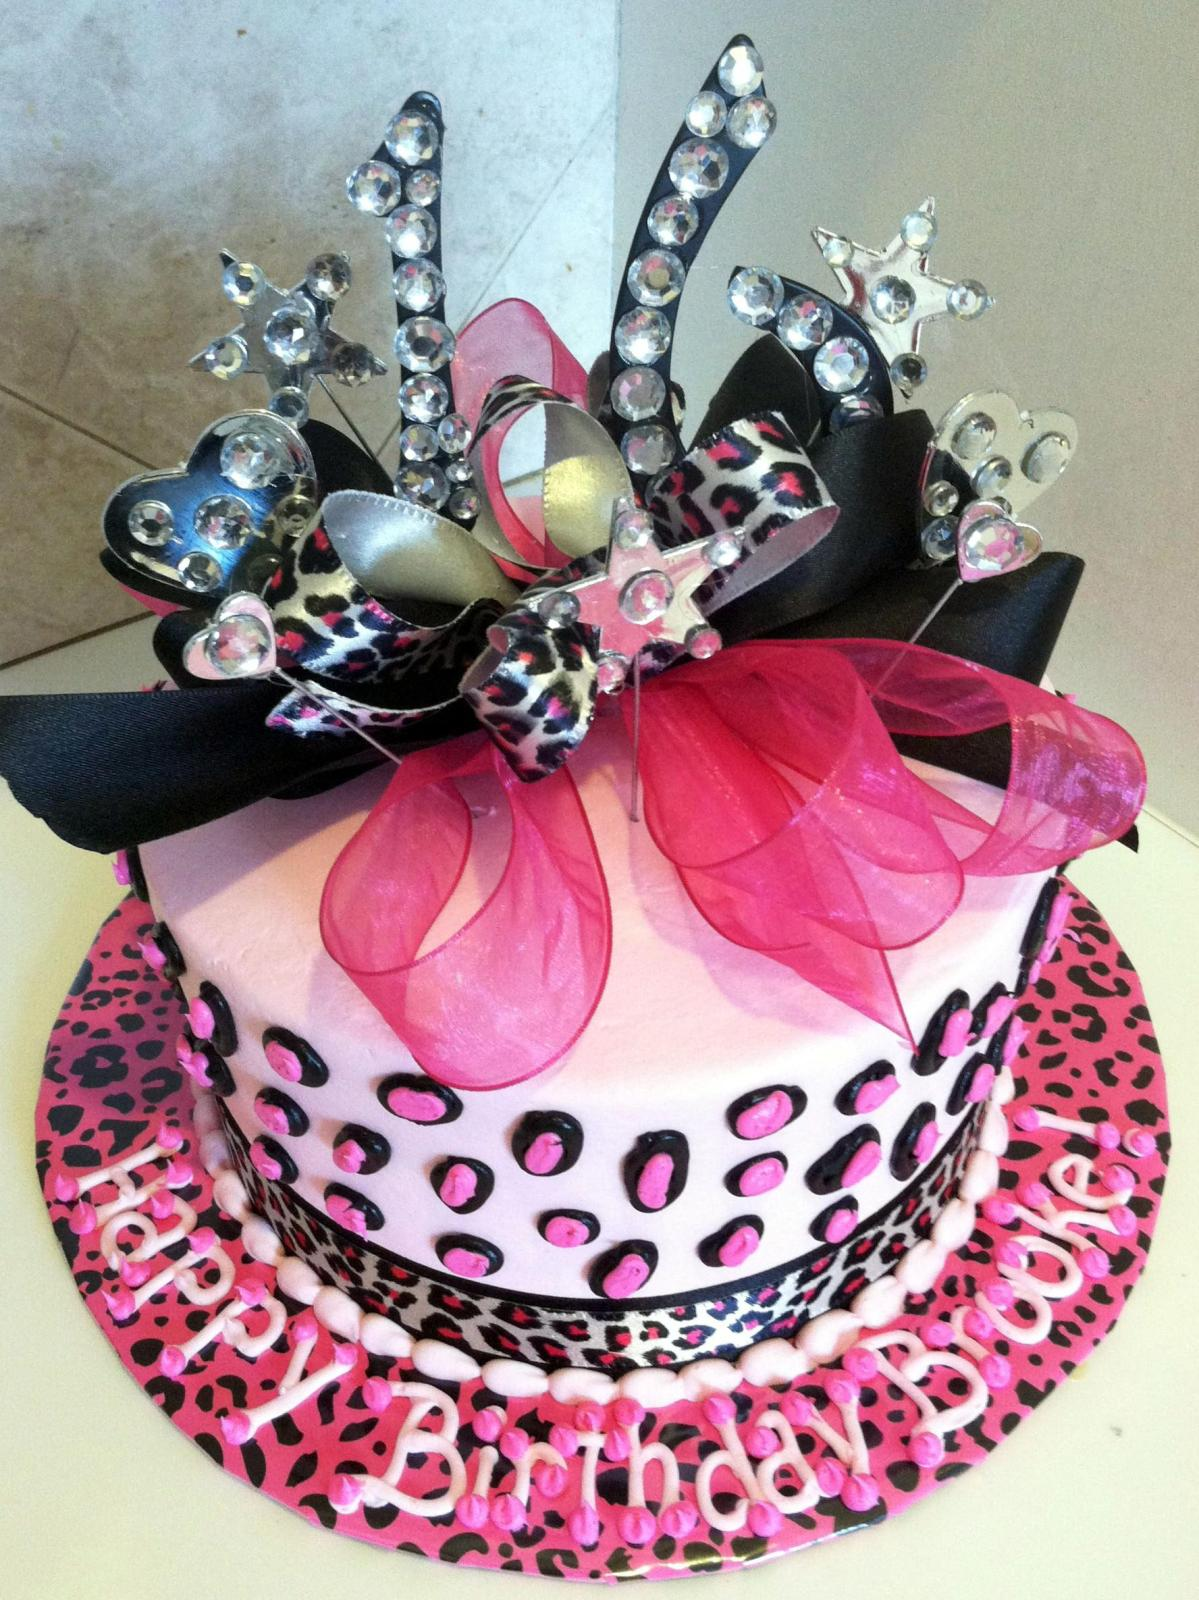 20 Super Amazing And Fantastic Cakes